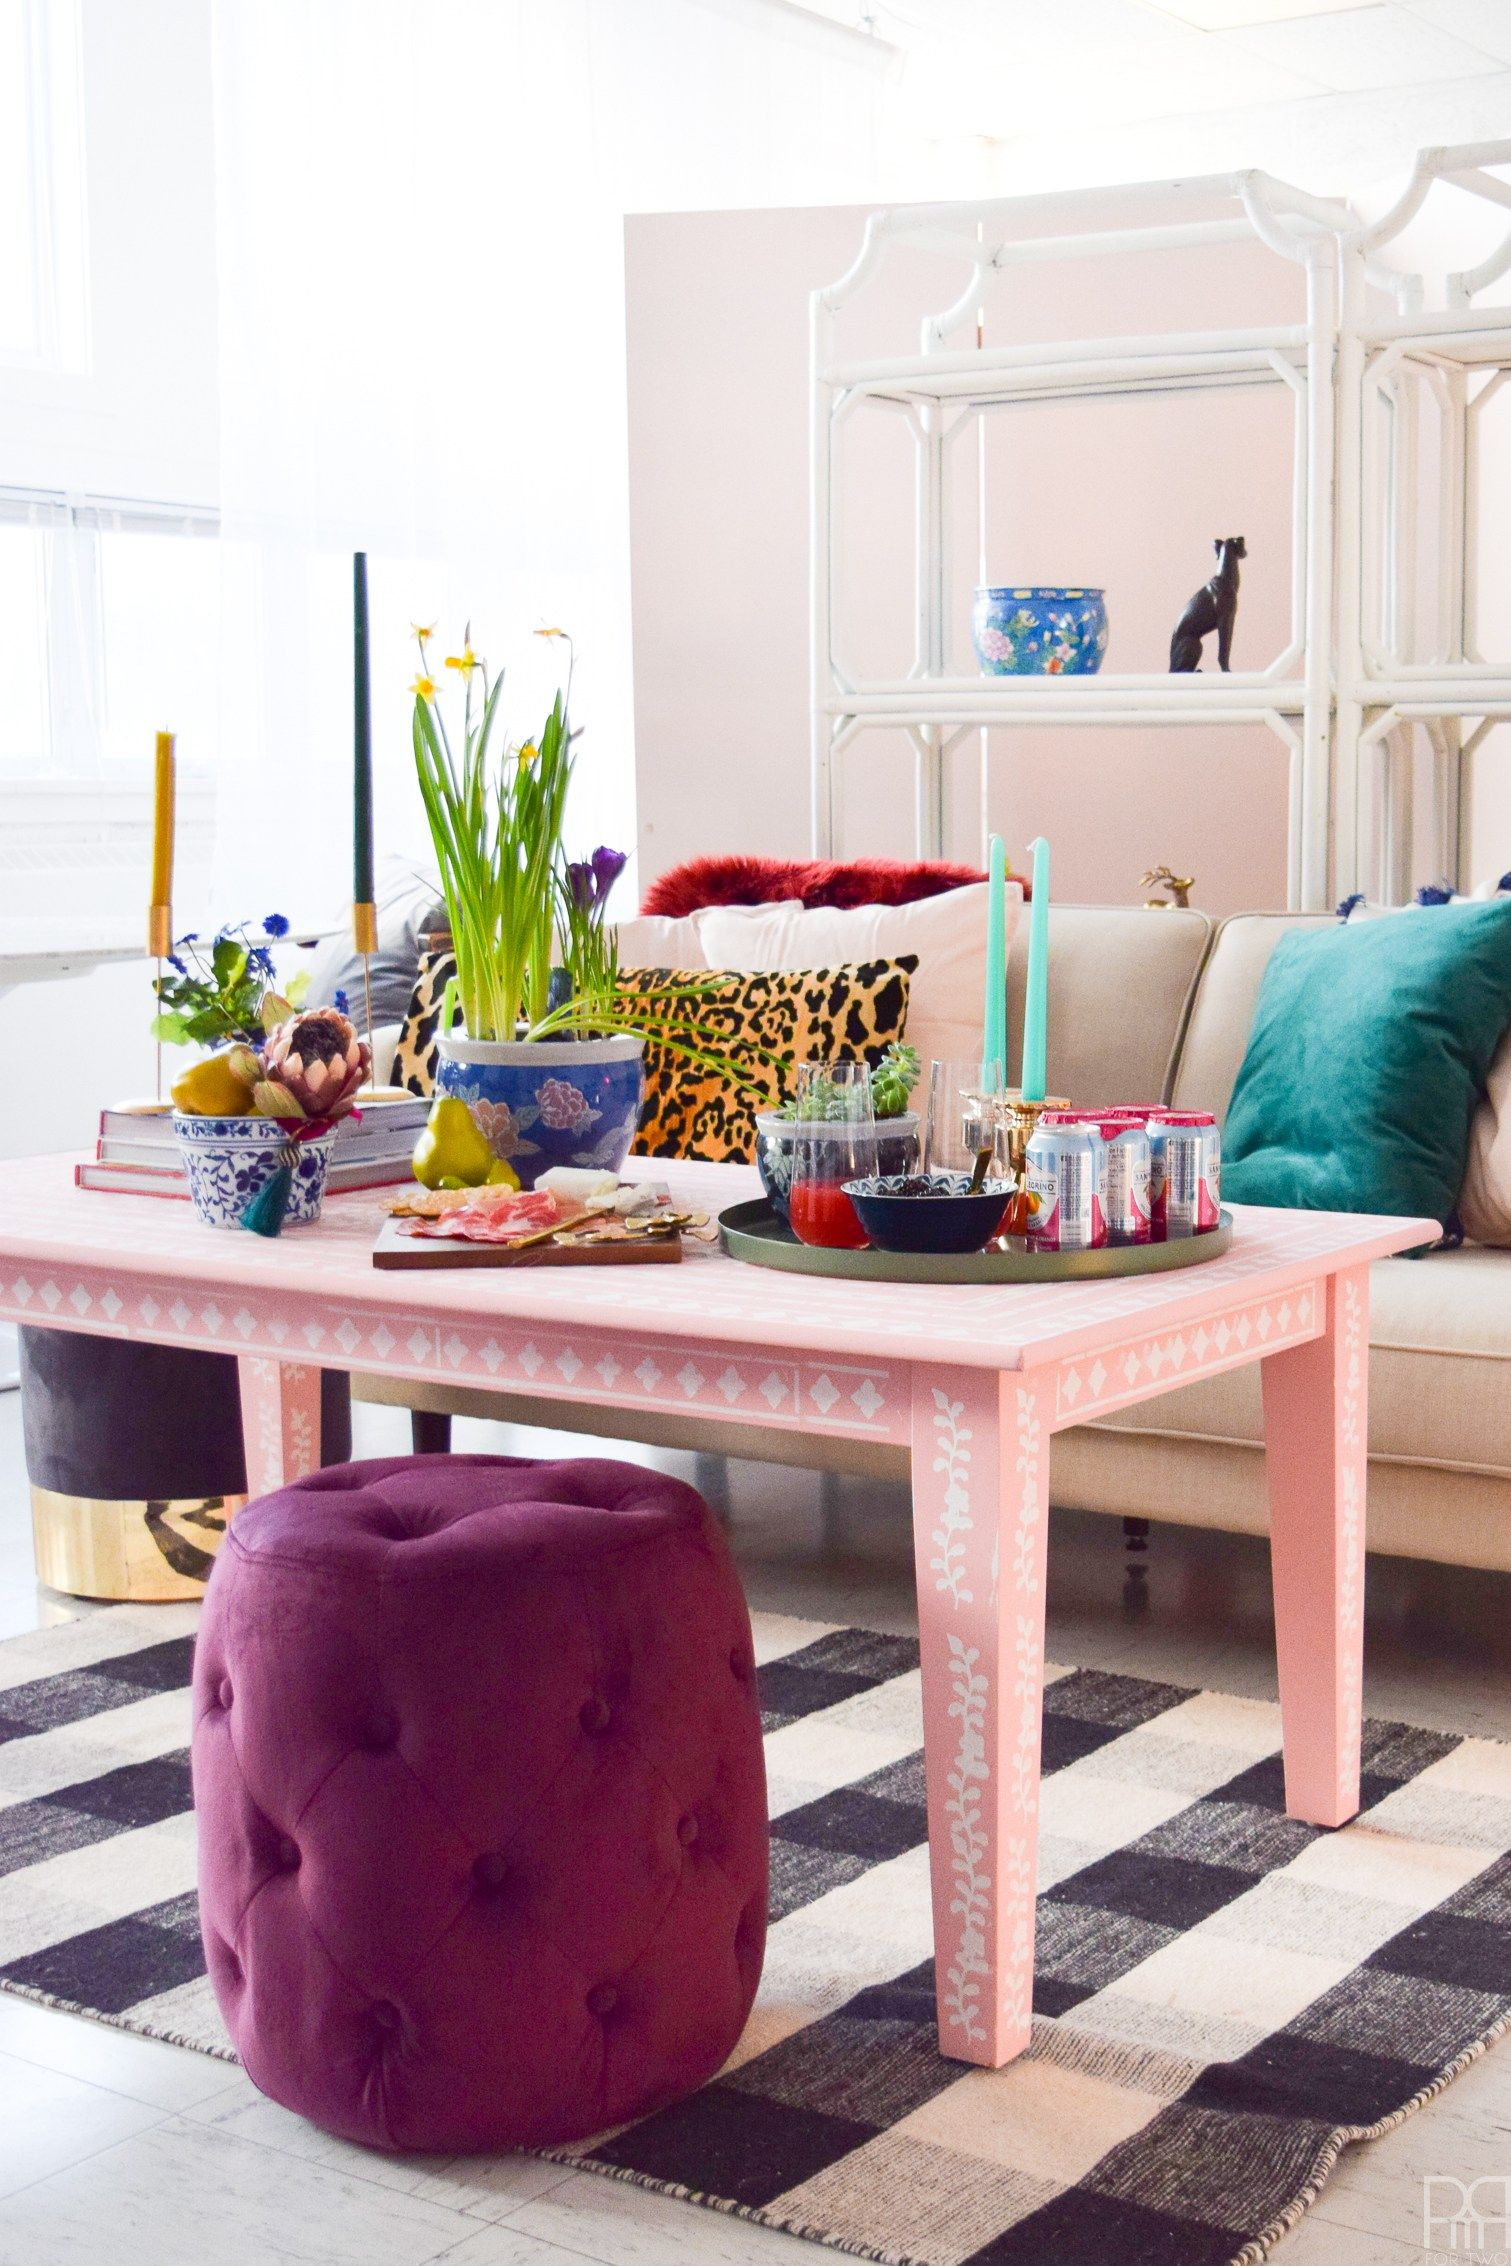 Delightful Paint Yourself A DIY Bone Inlay Coffee Table Using The Most Luxurious Chalk  Paint You Can Find. FAT Paint Goes On Smoothly And Is A Dream To Stencil  With.